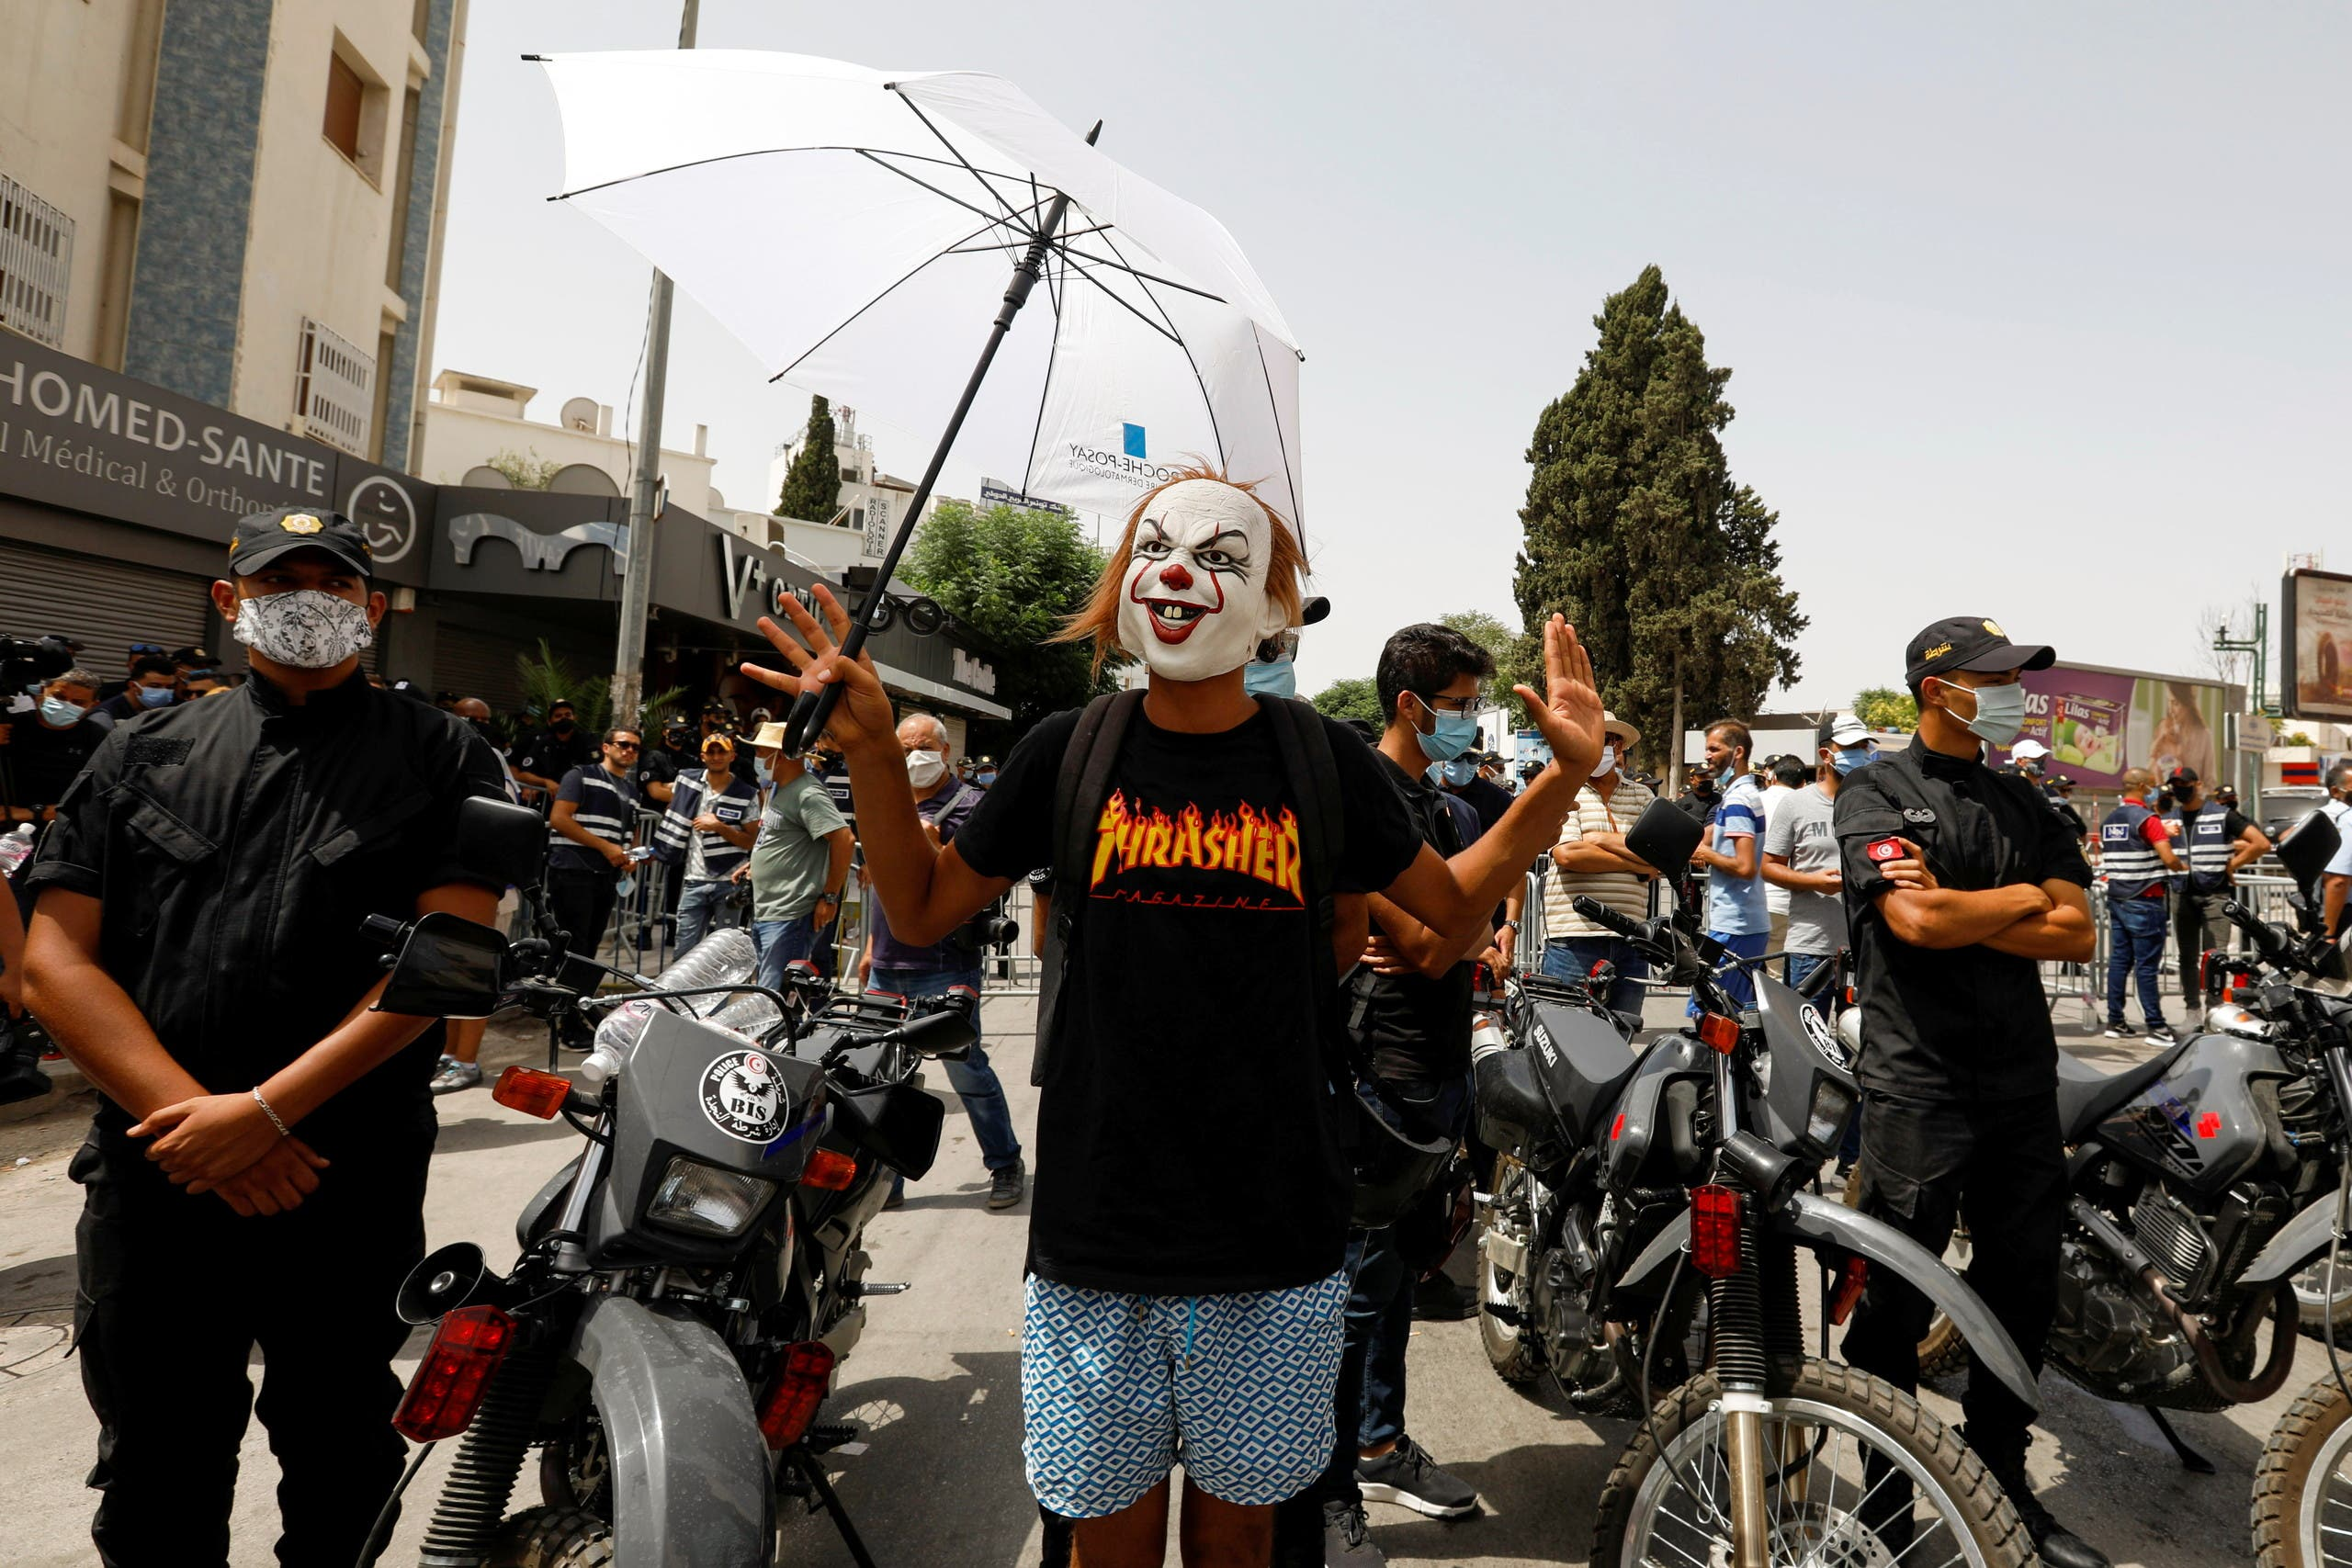 A demonstrator holding a sunshade gestures as he stands next to police officers during an anti-government protest in Tunis, Tunisia, July 25, 2021. (Reuters)